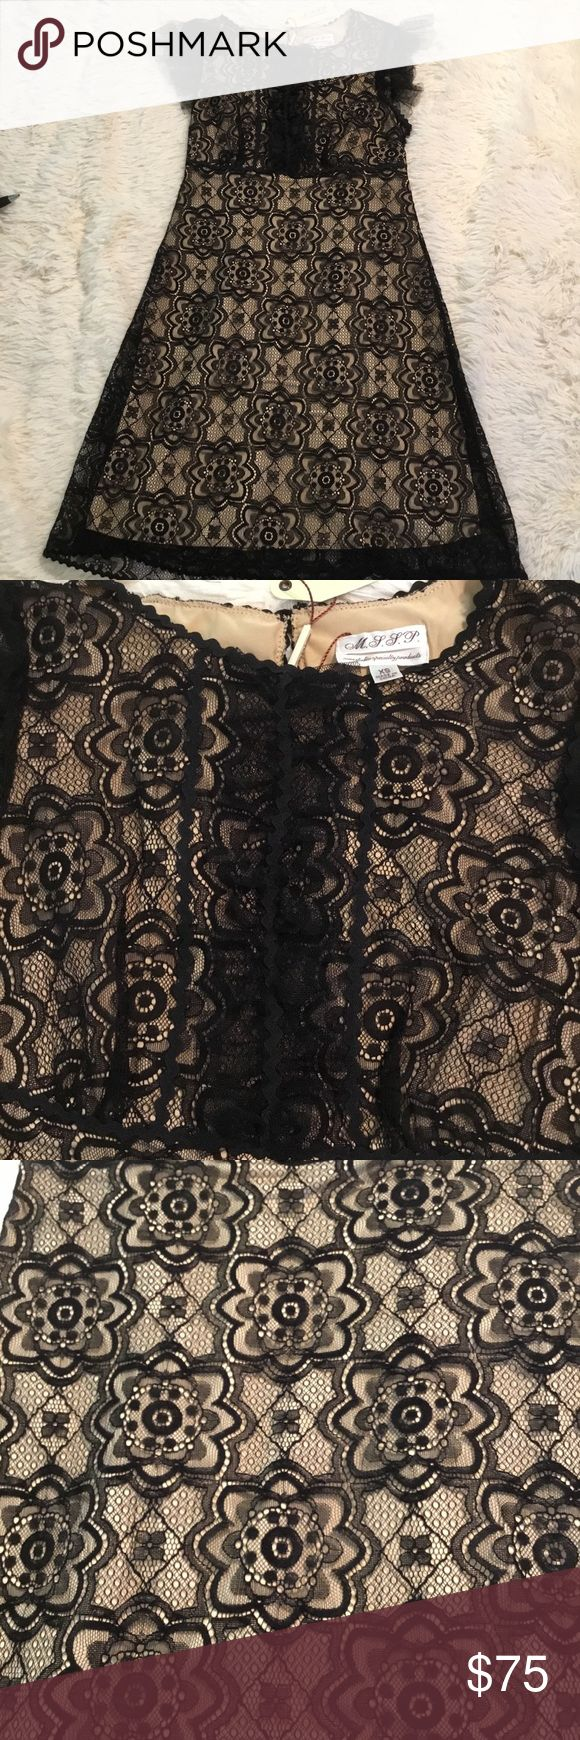 NWT Max Studio Specialty Products Dress NWT Super cuteBlack & Nude Dress. Size XS Perfect for New Years Eve!🎉 Max Studio Specialty Dresses